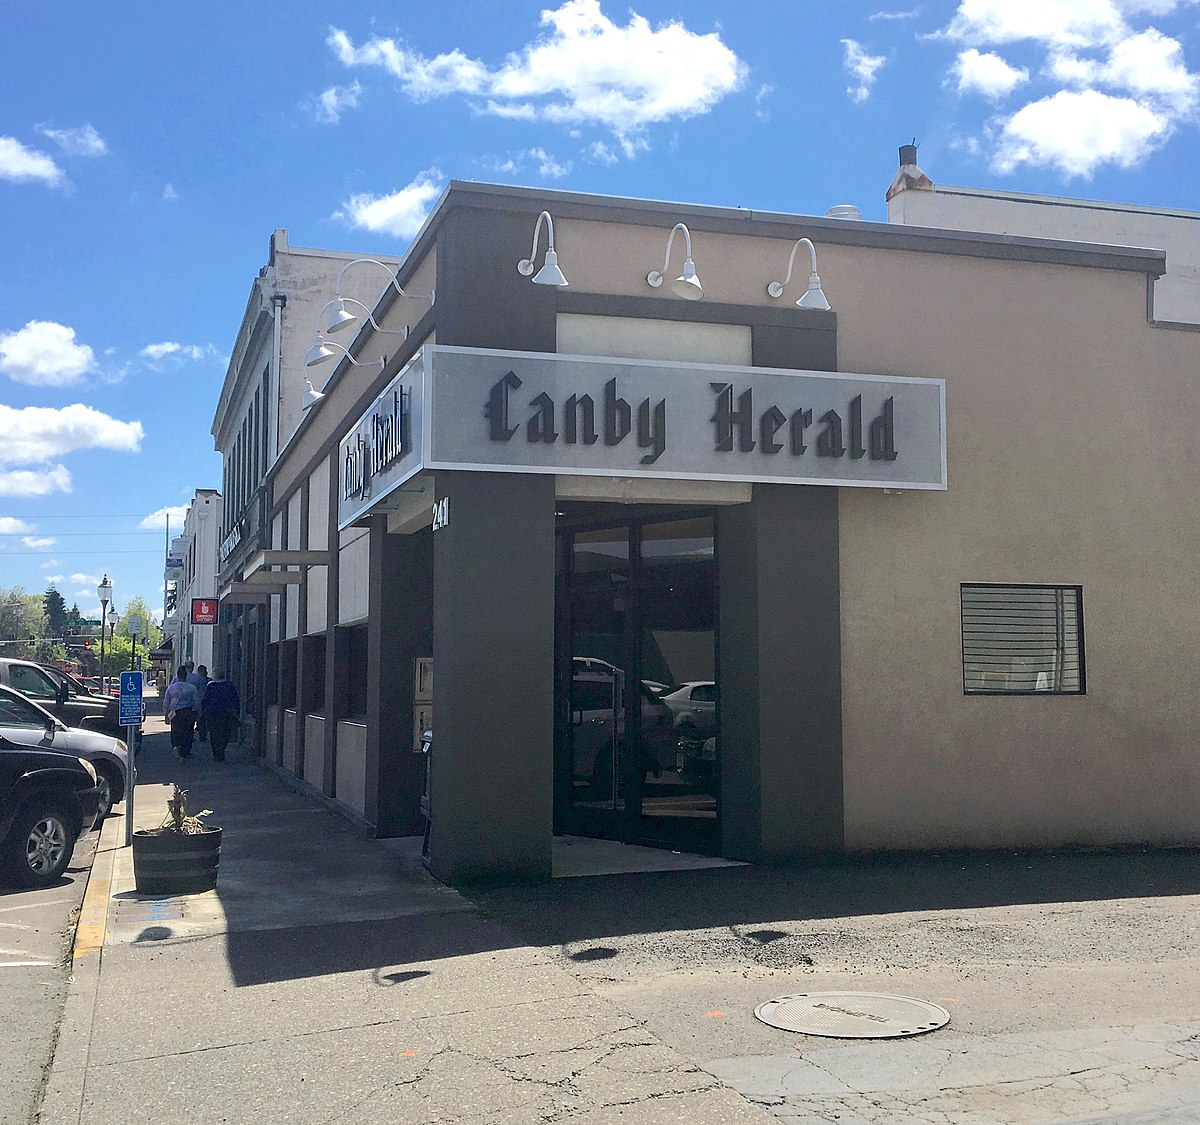 canby herald